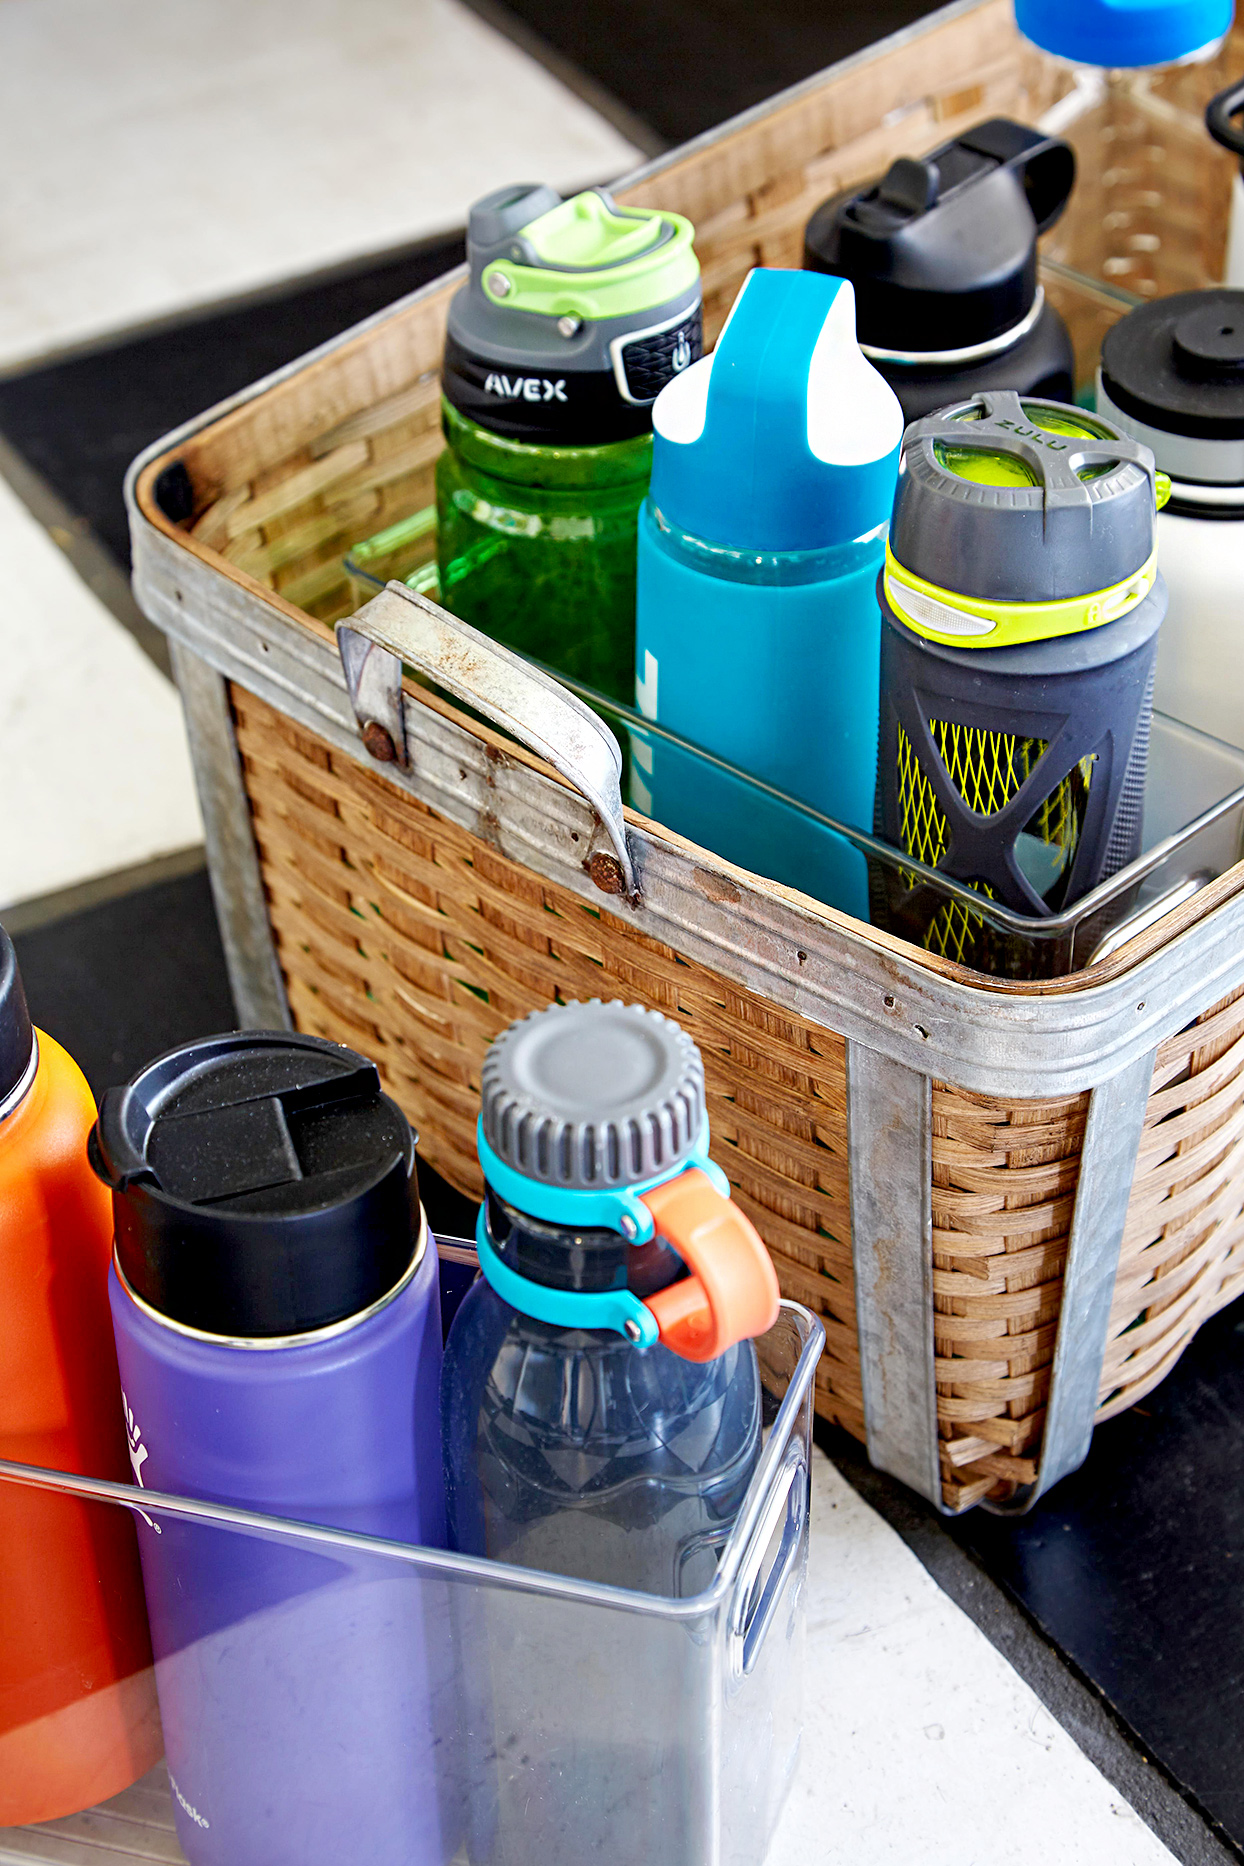 Water bottles in plastic and wicker baskets